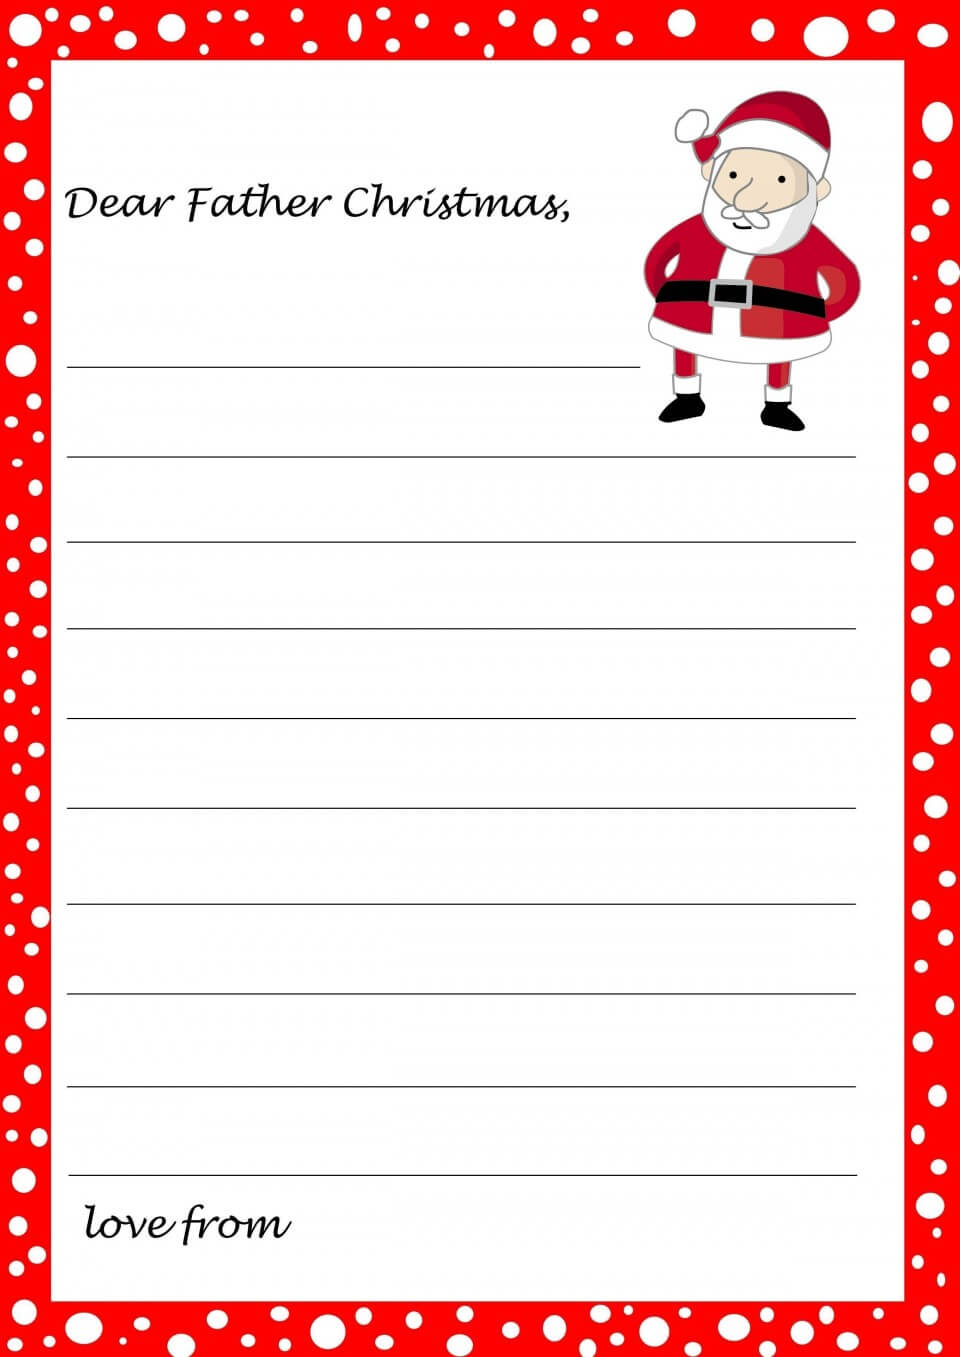 001 Letters From Santa Template Sensational Ideas Free Pdf With Santa Letter Template Word